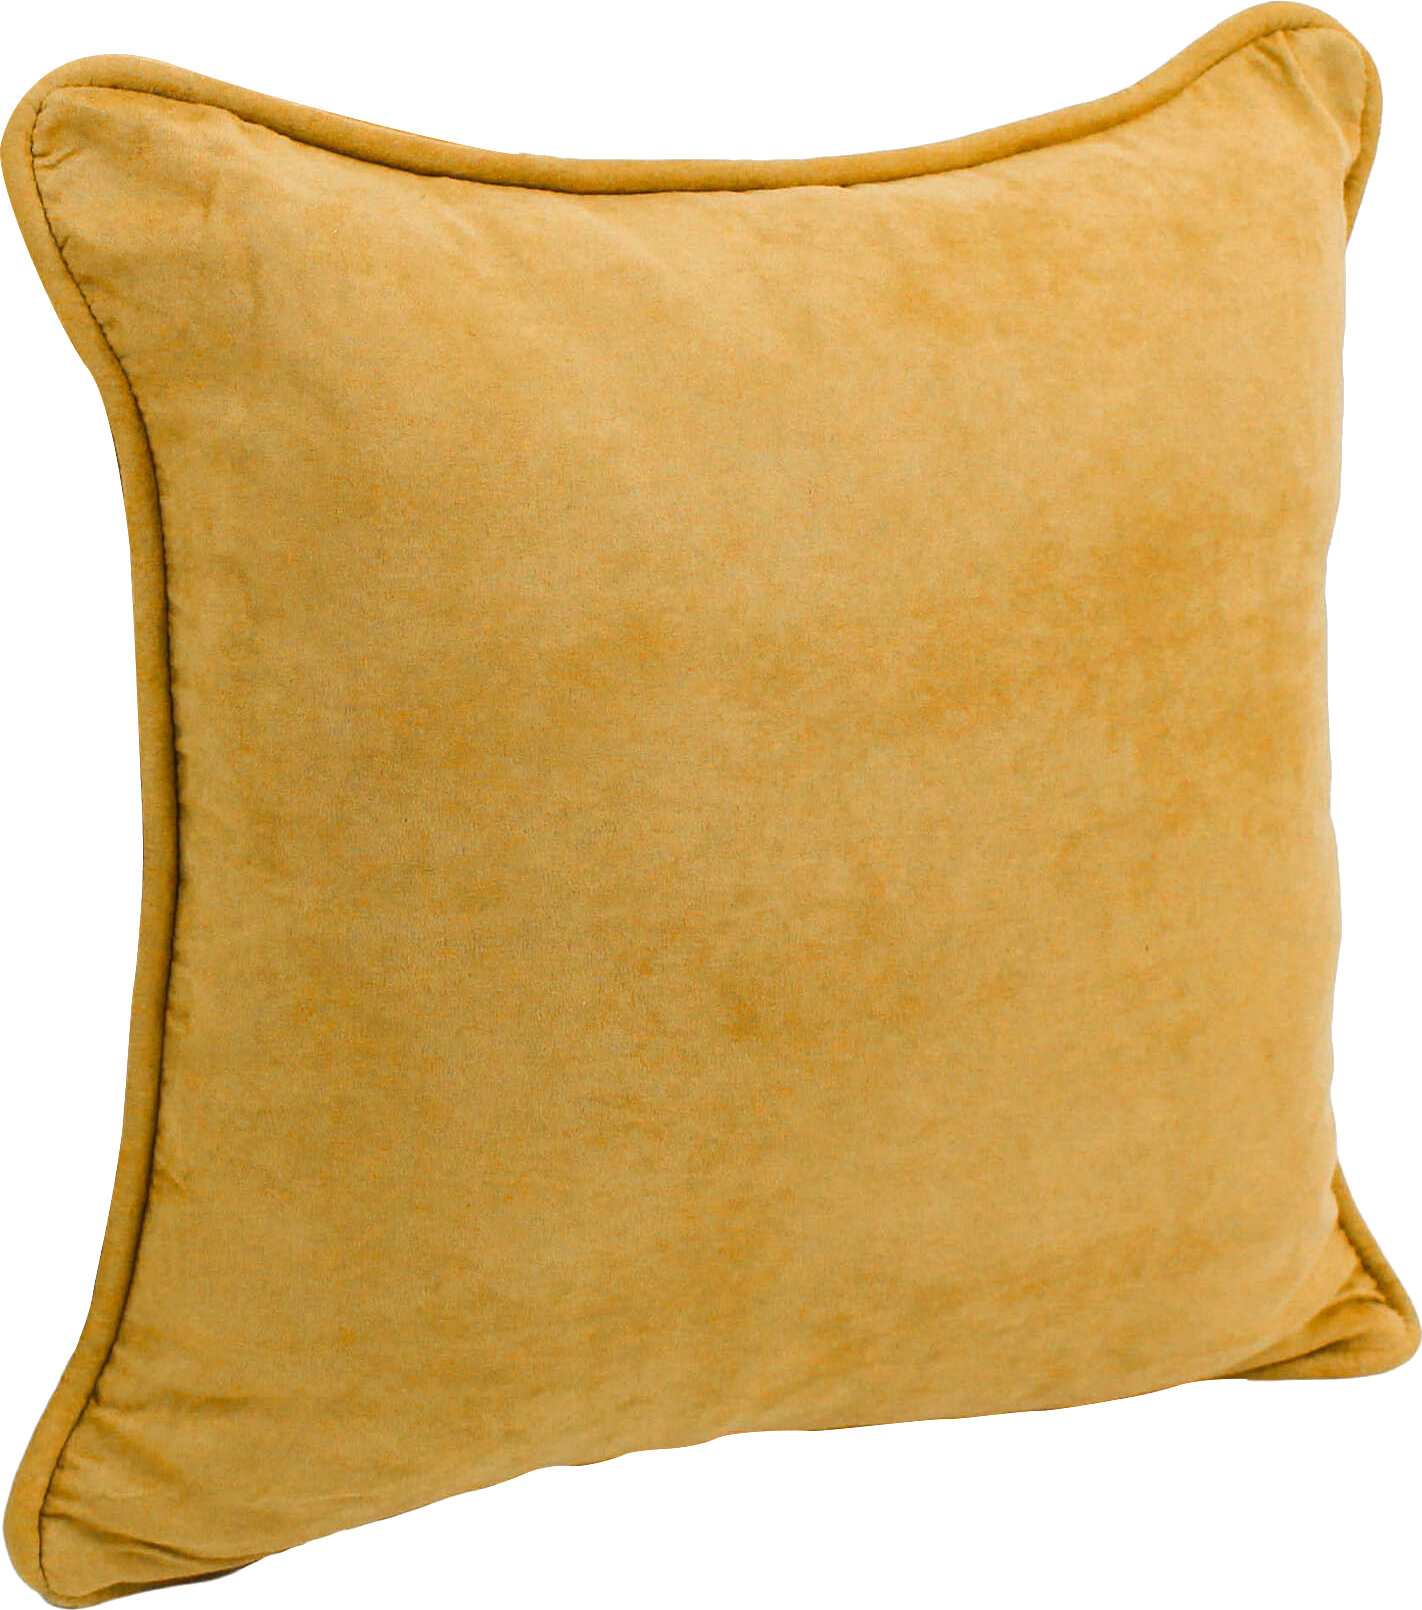 inch pillow products cushion golden lumbar and front orange silk in chanderi decorative cover gold